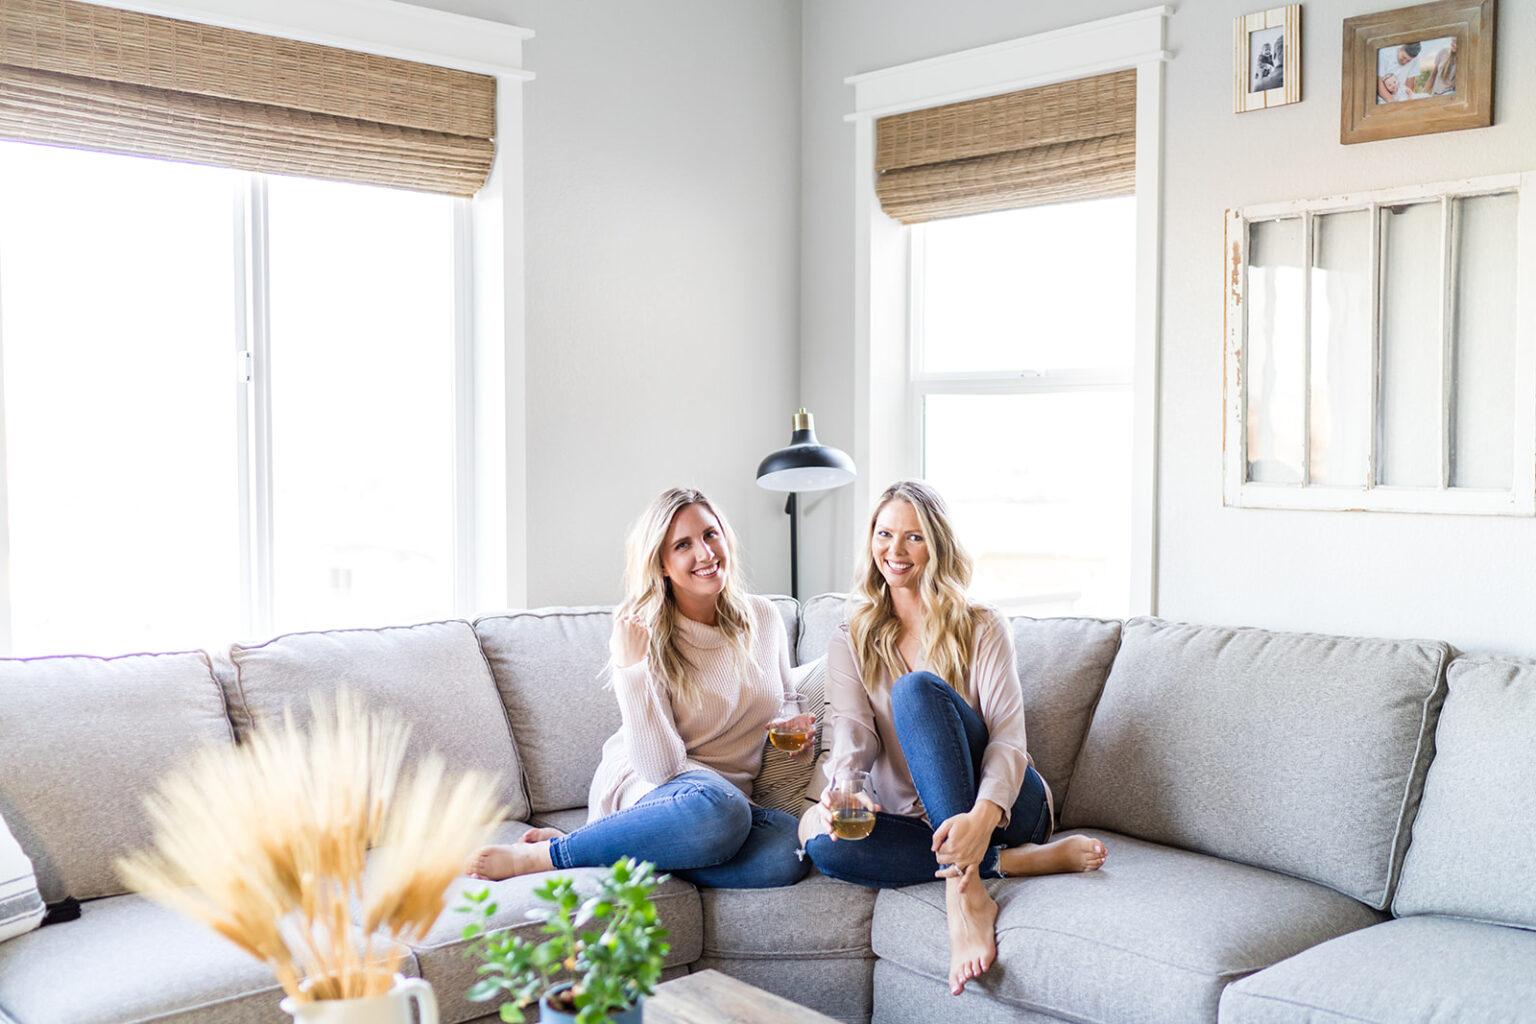 The two authors of the blog sitting on a couch drinking wine.